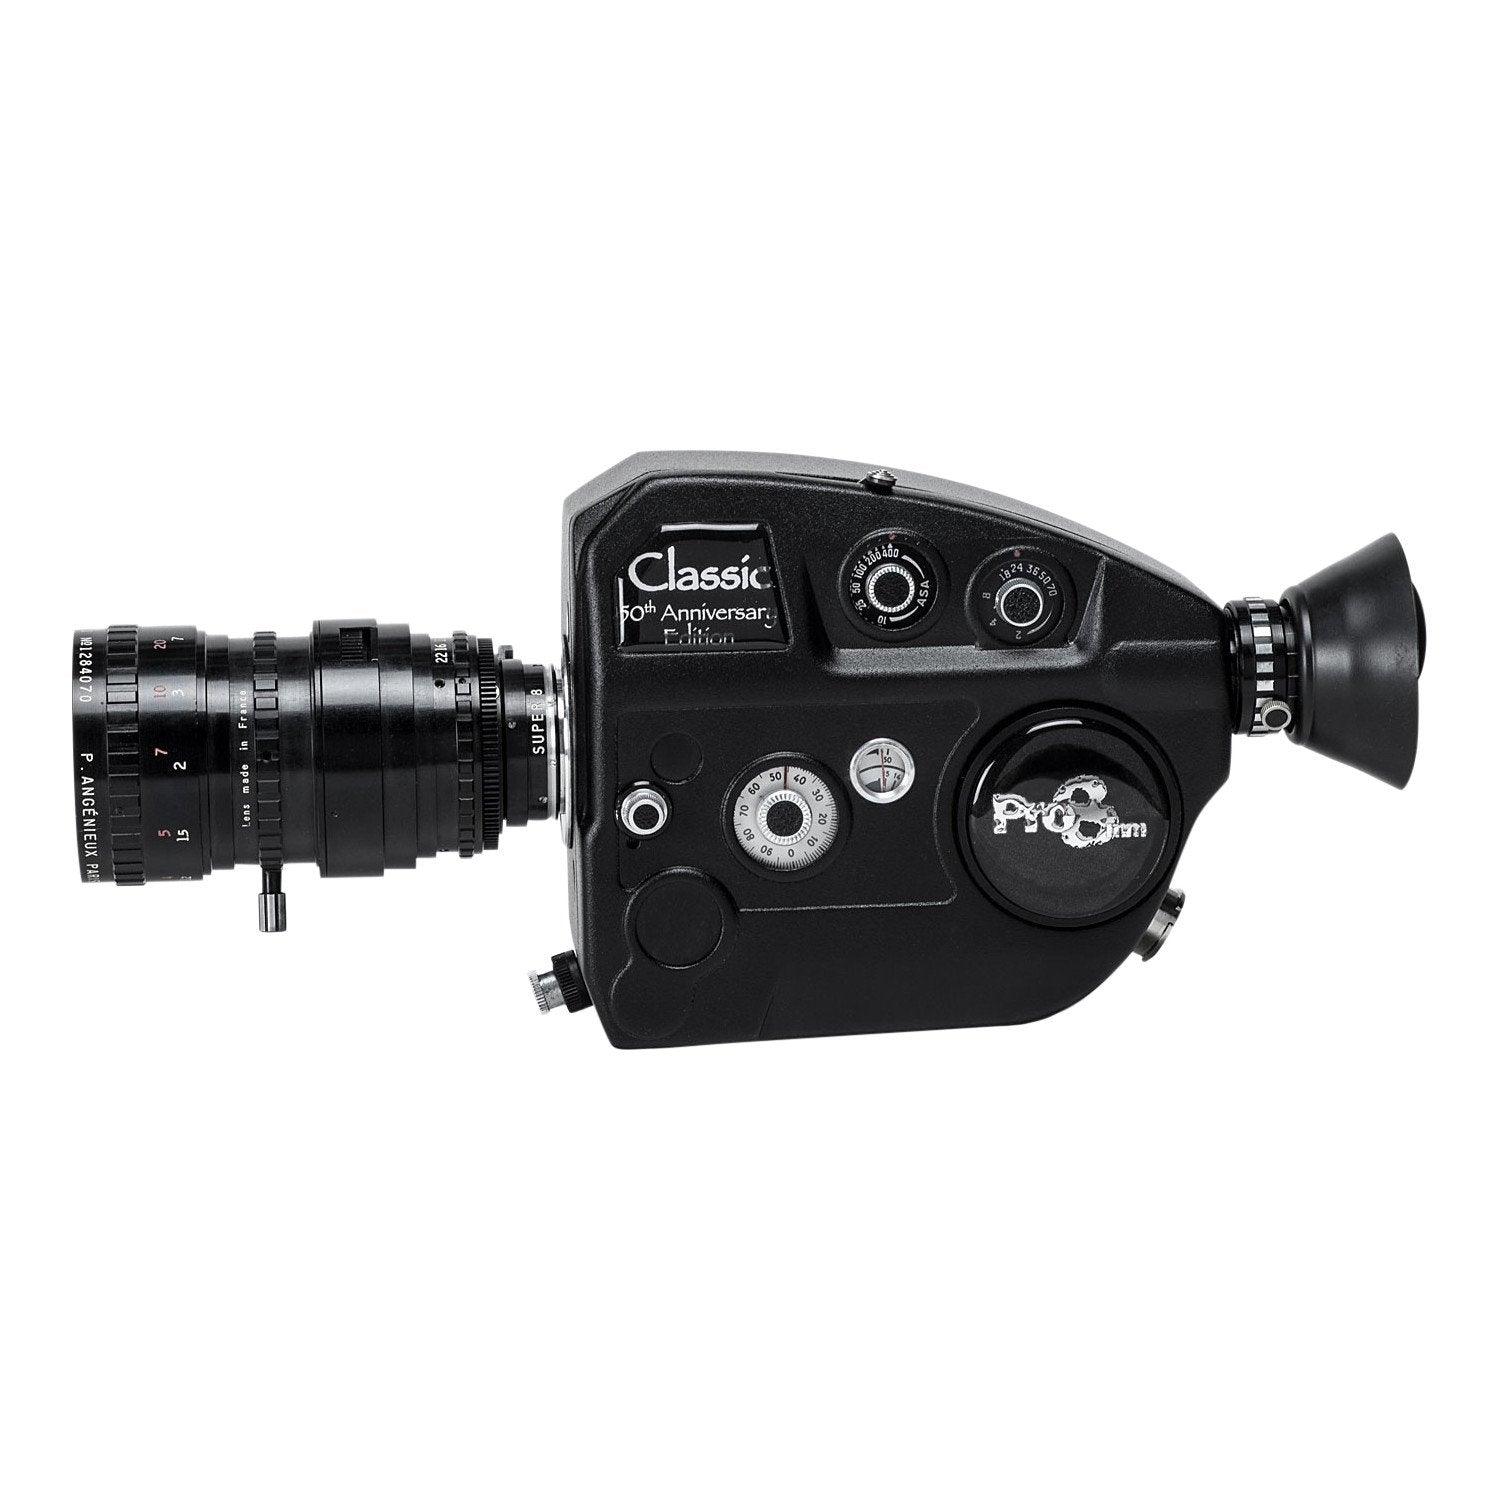 Super 8 Camera Rental: Classic Pro with Max 8 and Crystal Sync